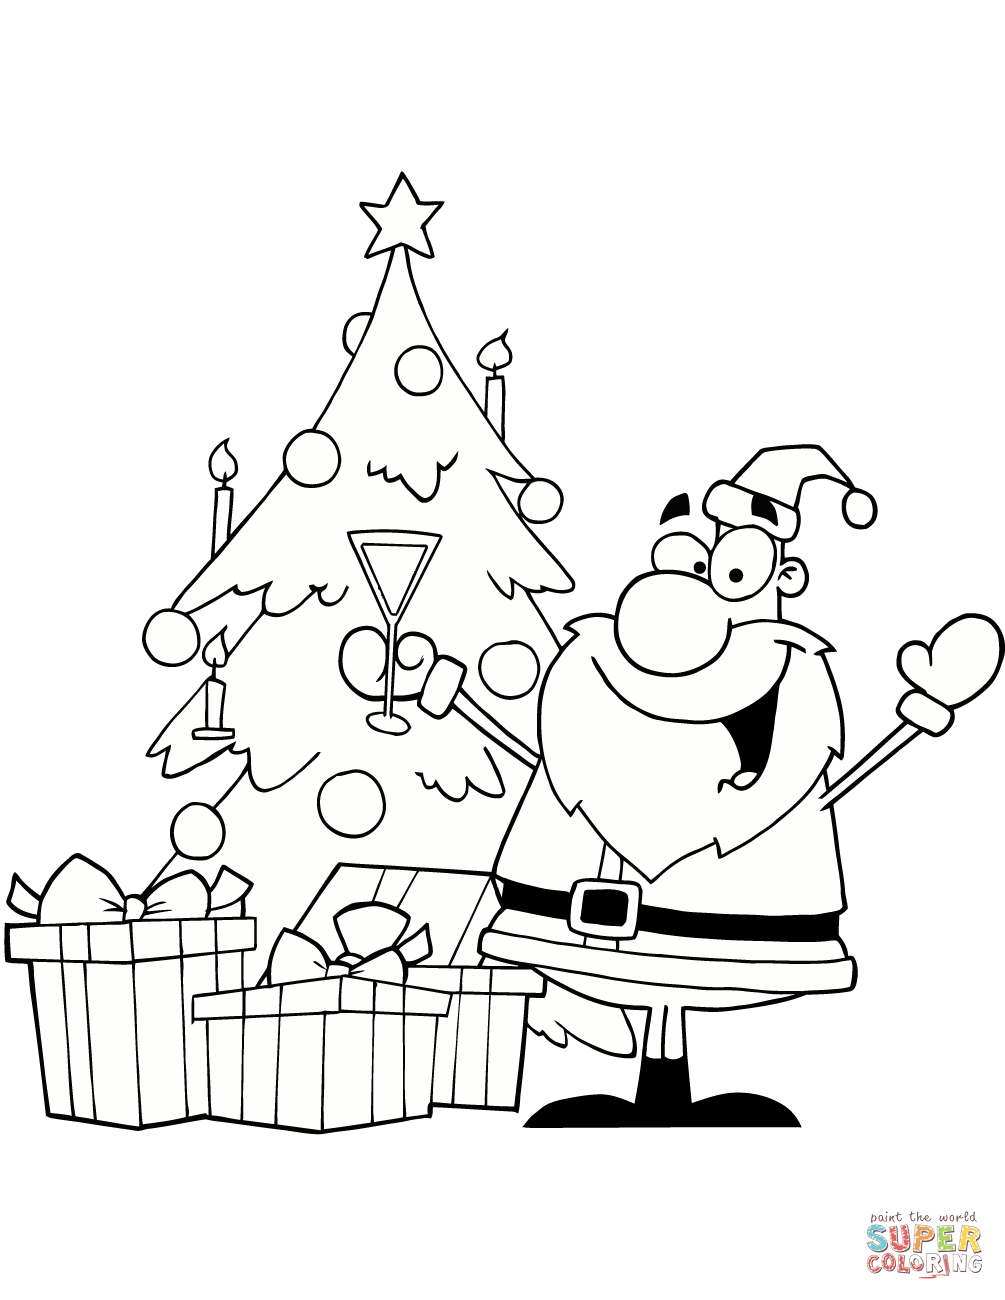 Santa Tree Coloring Page With Drinking Champagne By A Christmas Free